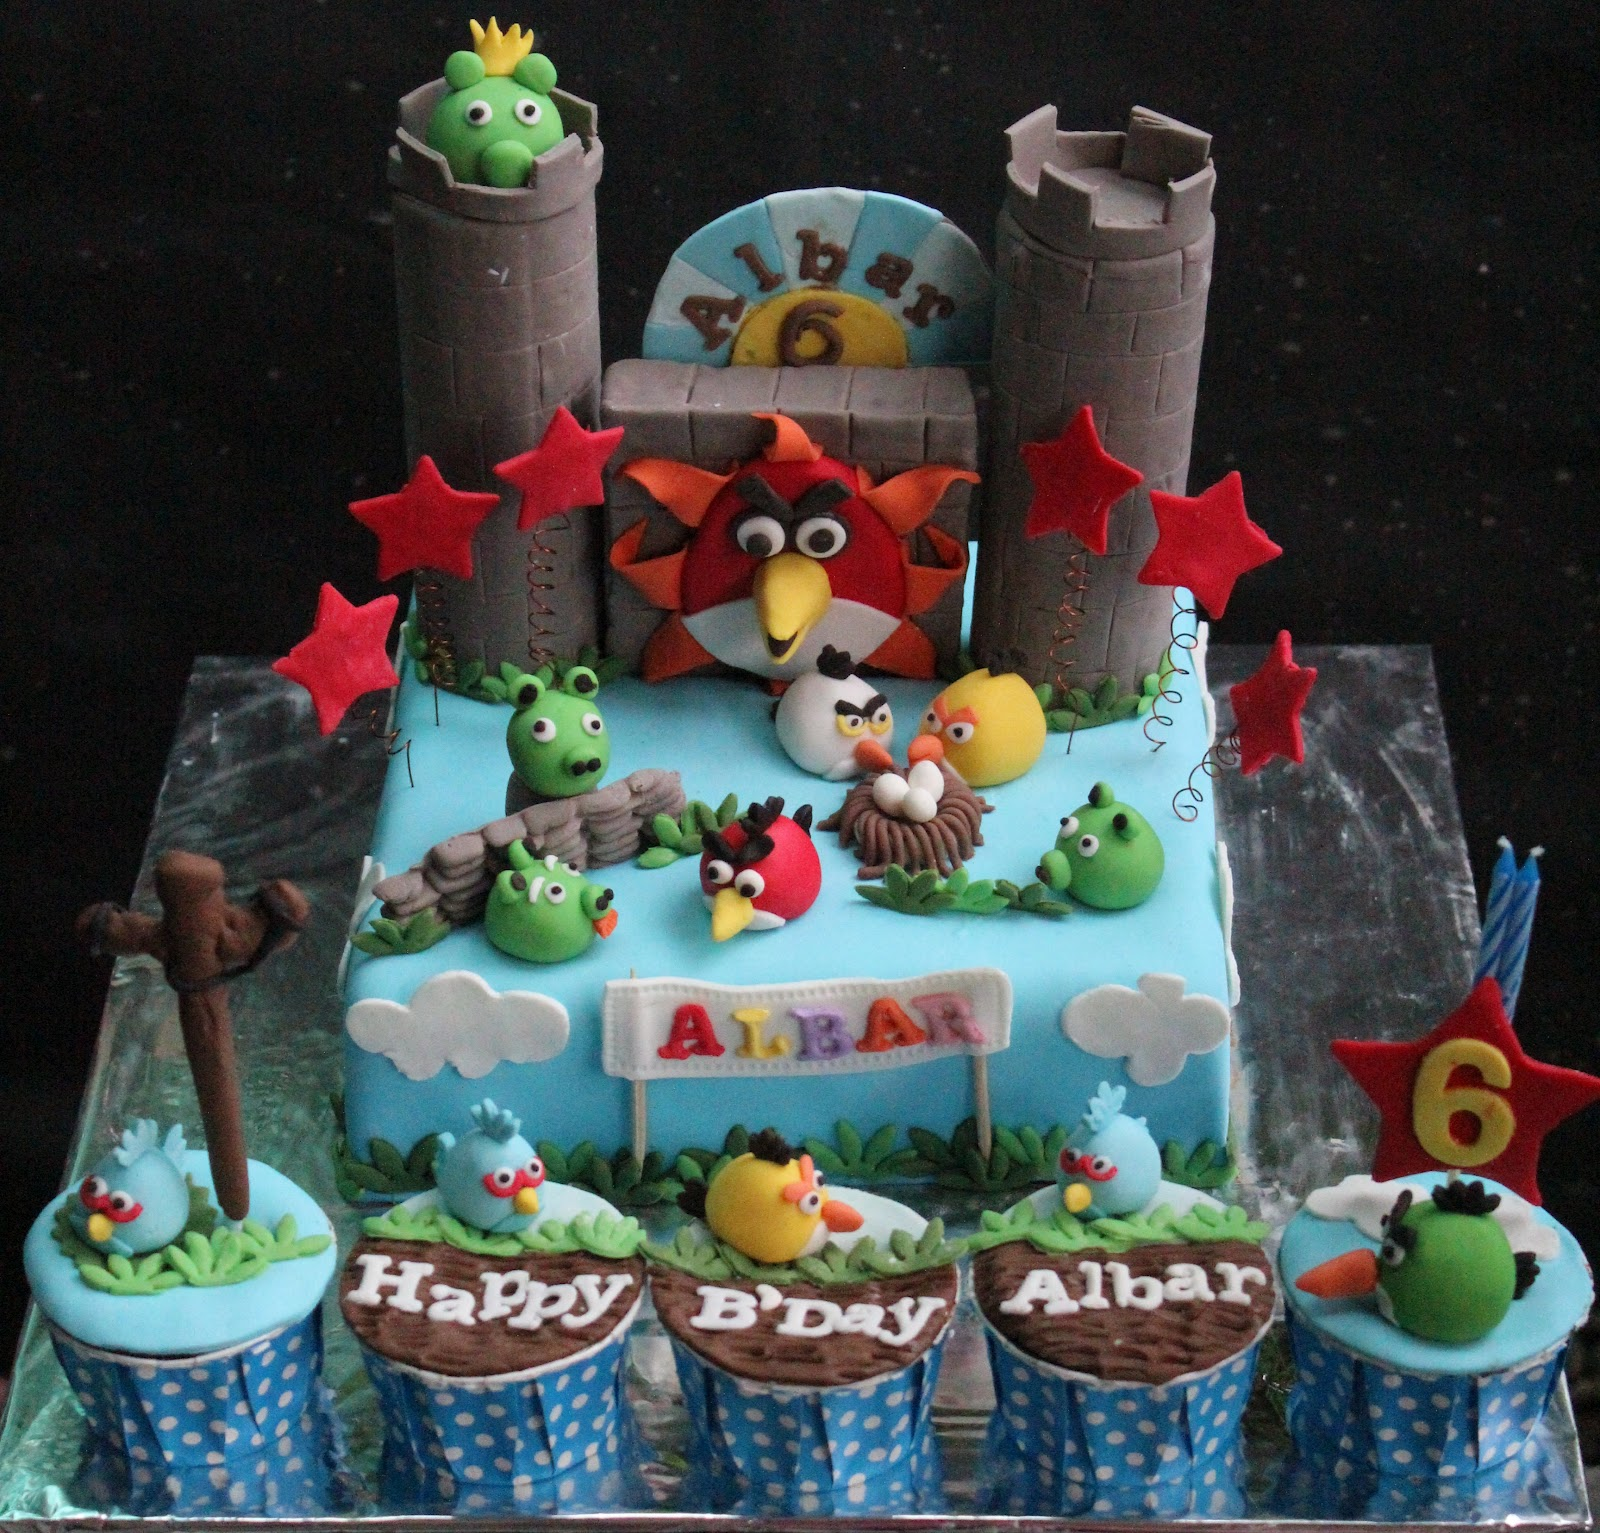 Angry Bird Cake and cupcakes for Albar